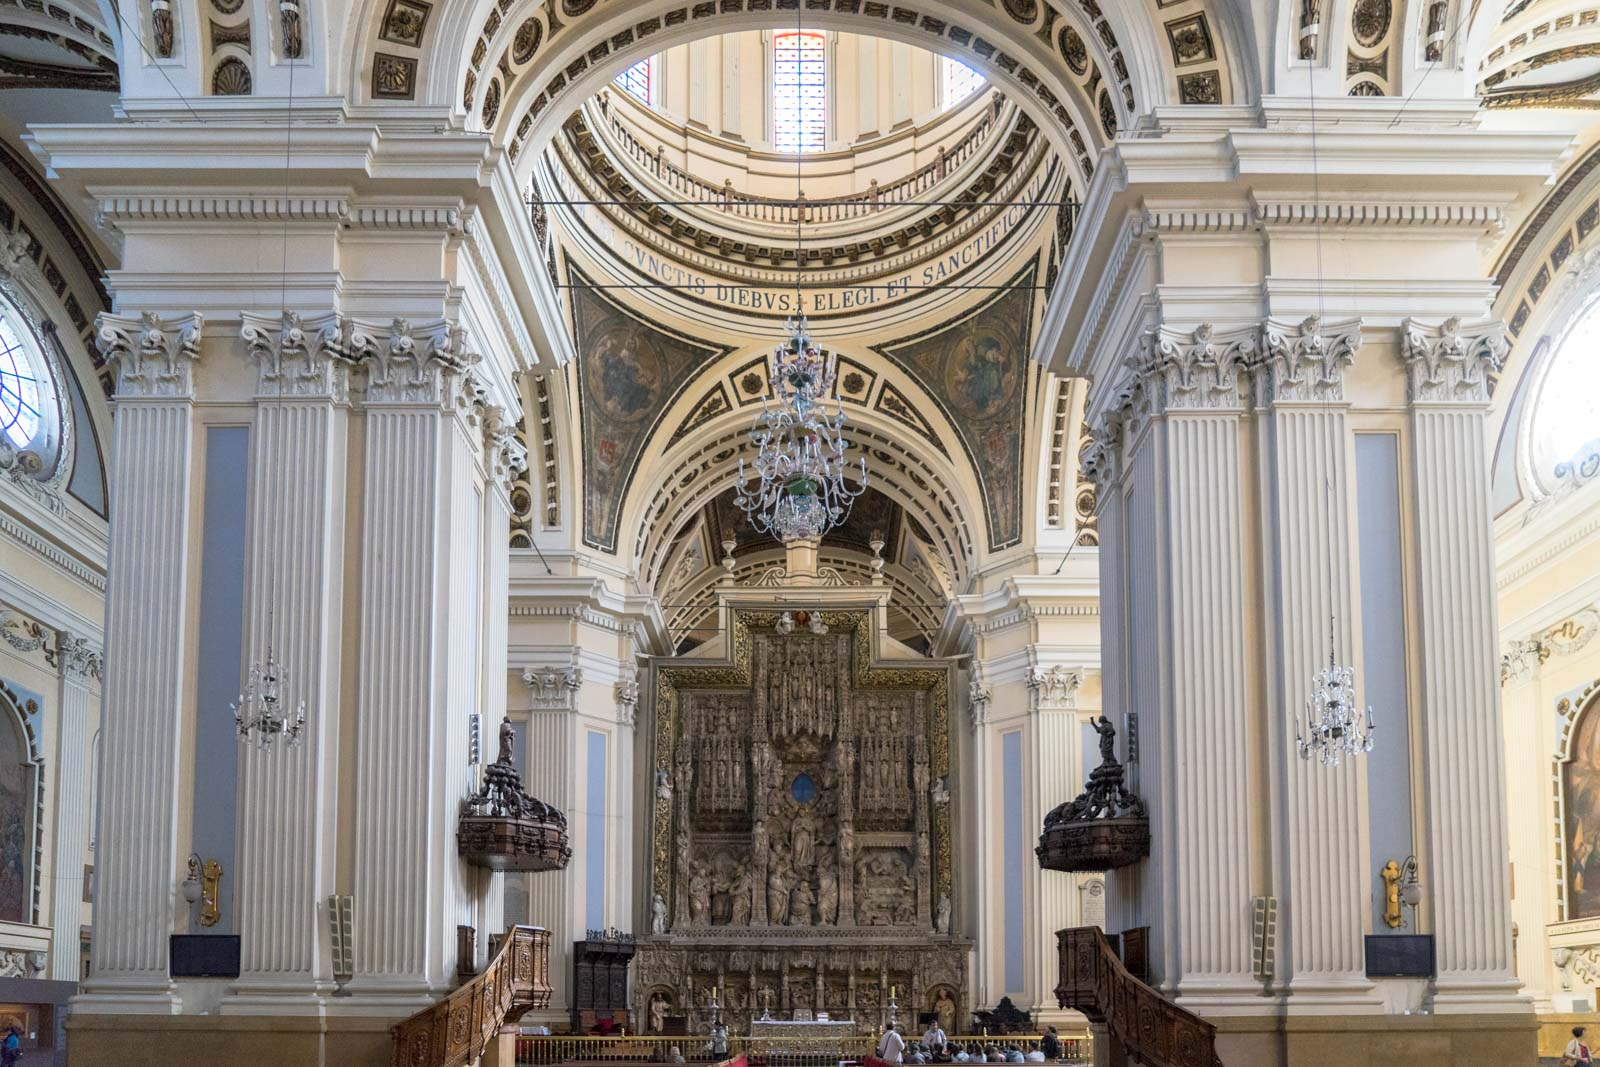 Cathedral-Basilica of Our Lady of the Pillar, Zaragoza, Spain